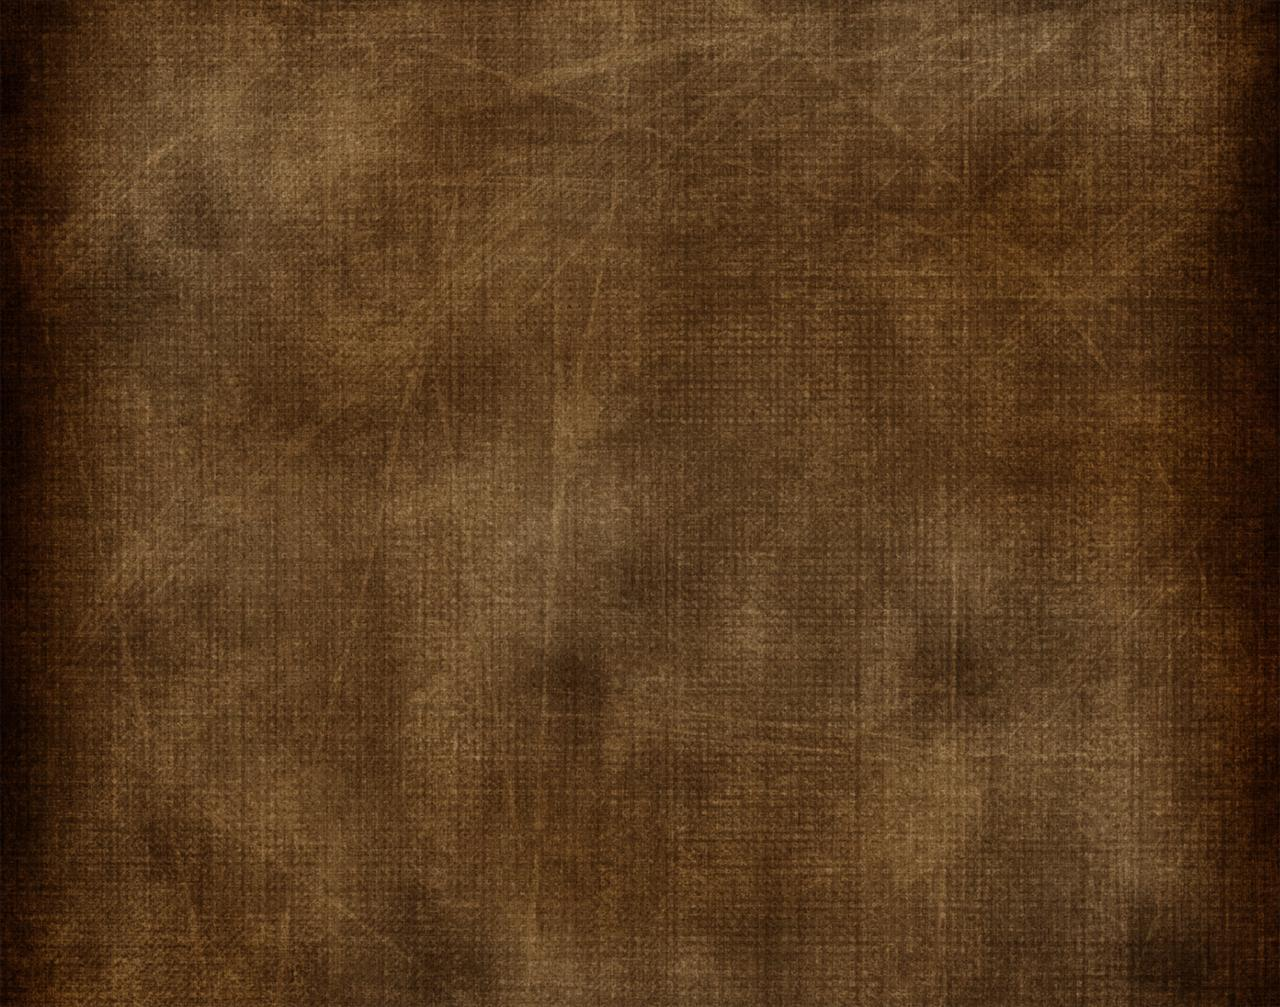 Rustic Background Related Keywords & Suggestions  Rustic Background